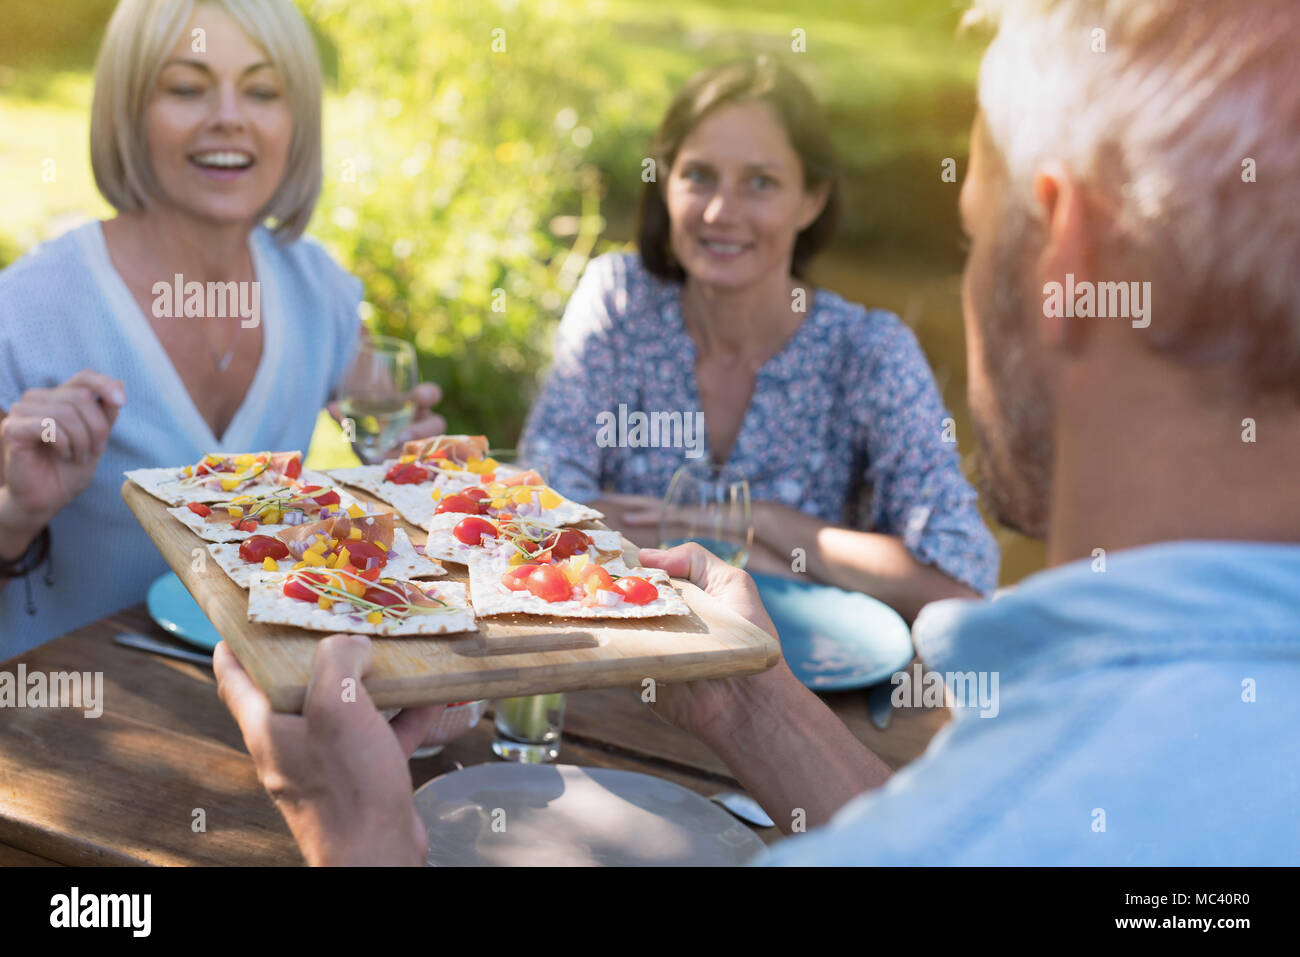 In summer. group of friends in their forties gathered around a table in the garden to share a meal. A man offers  hams toasts to guests - Stock Image